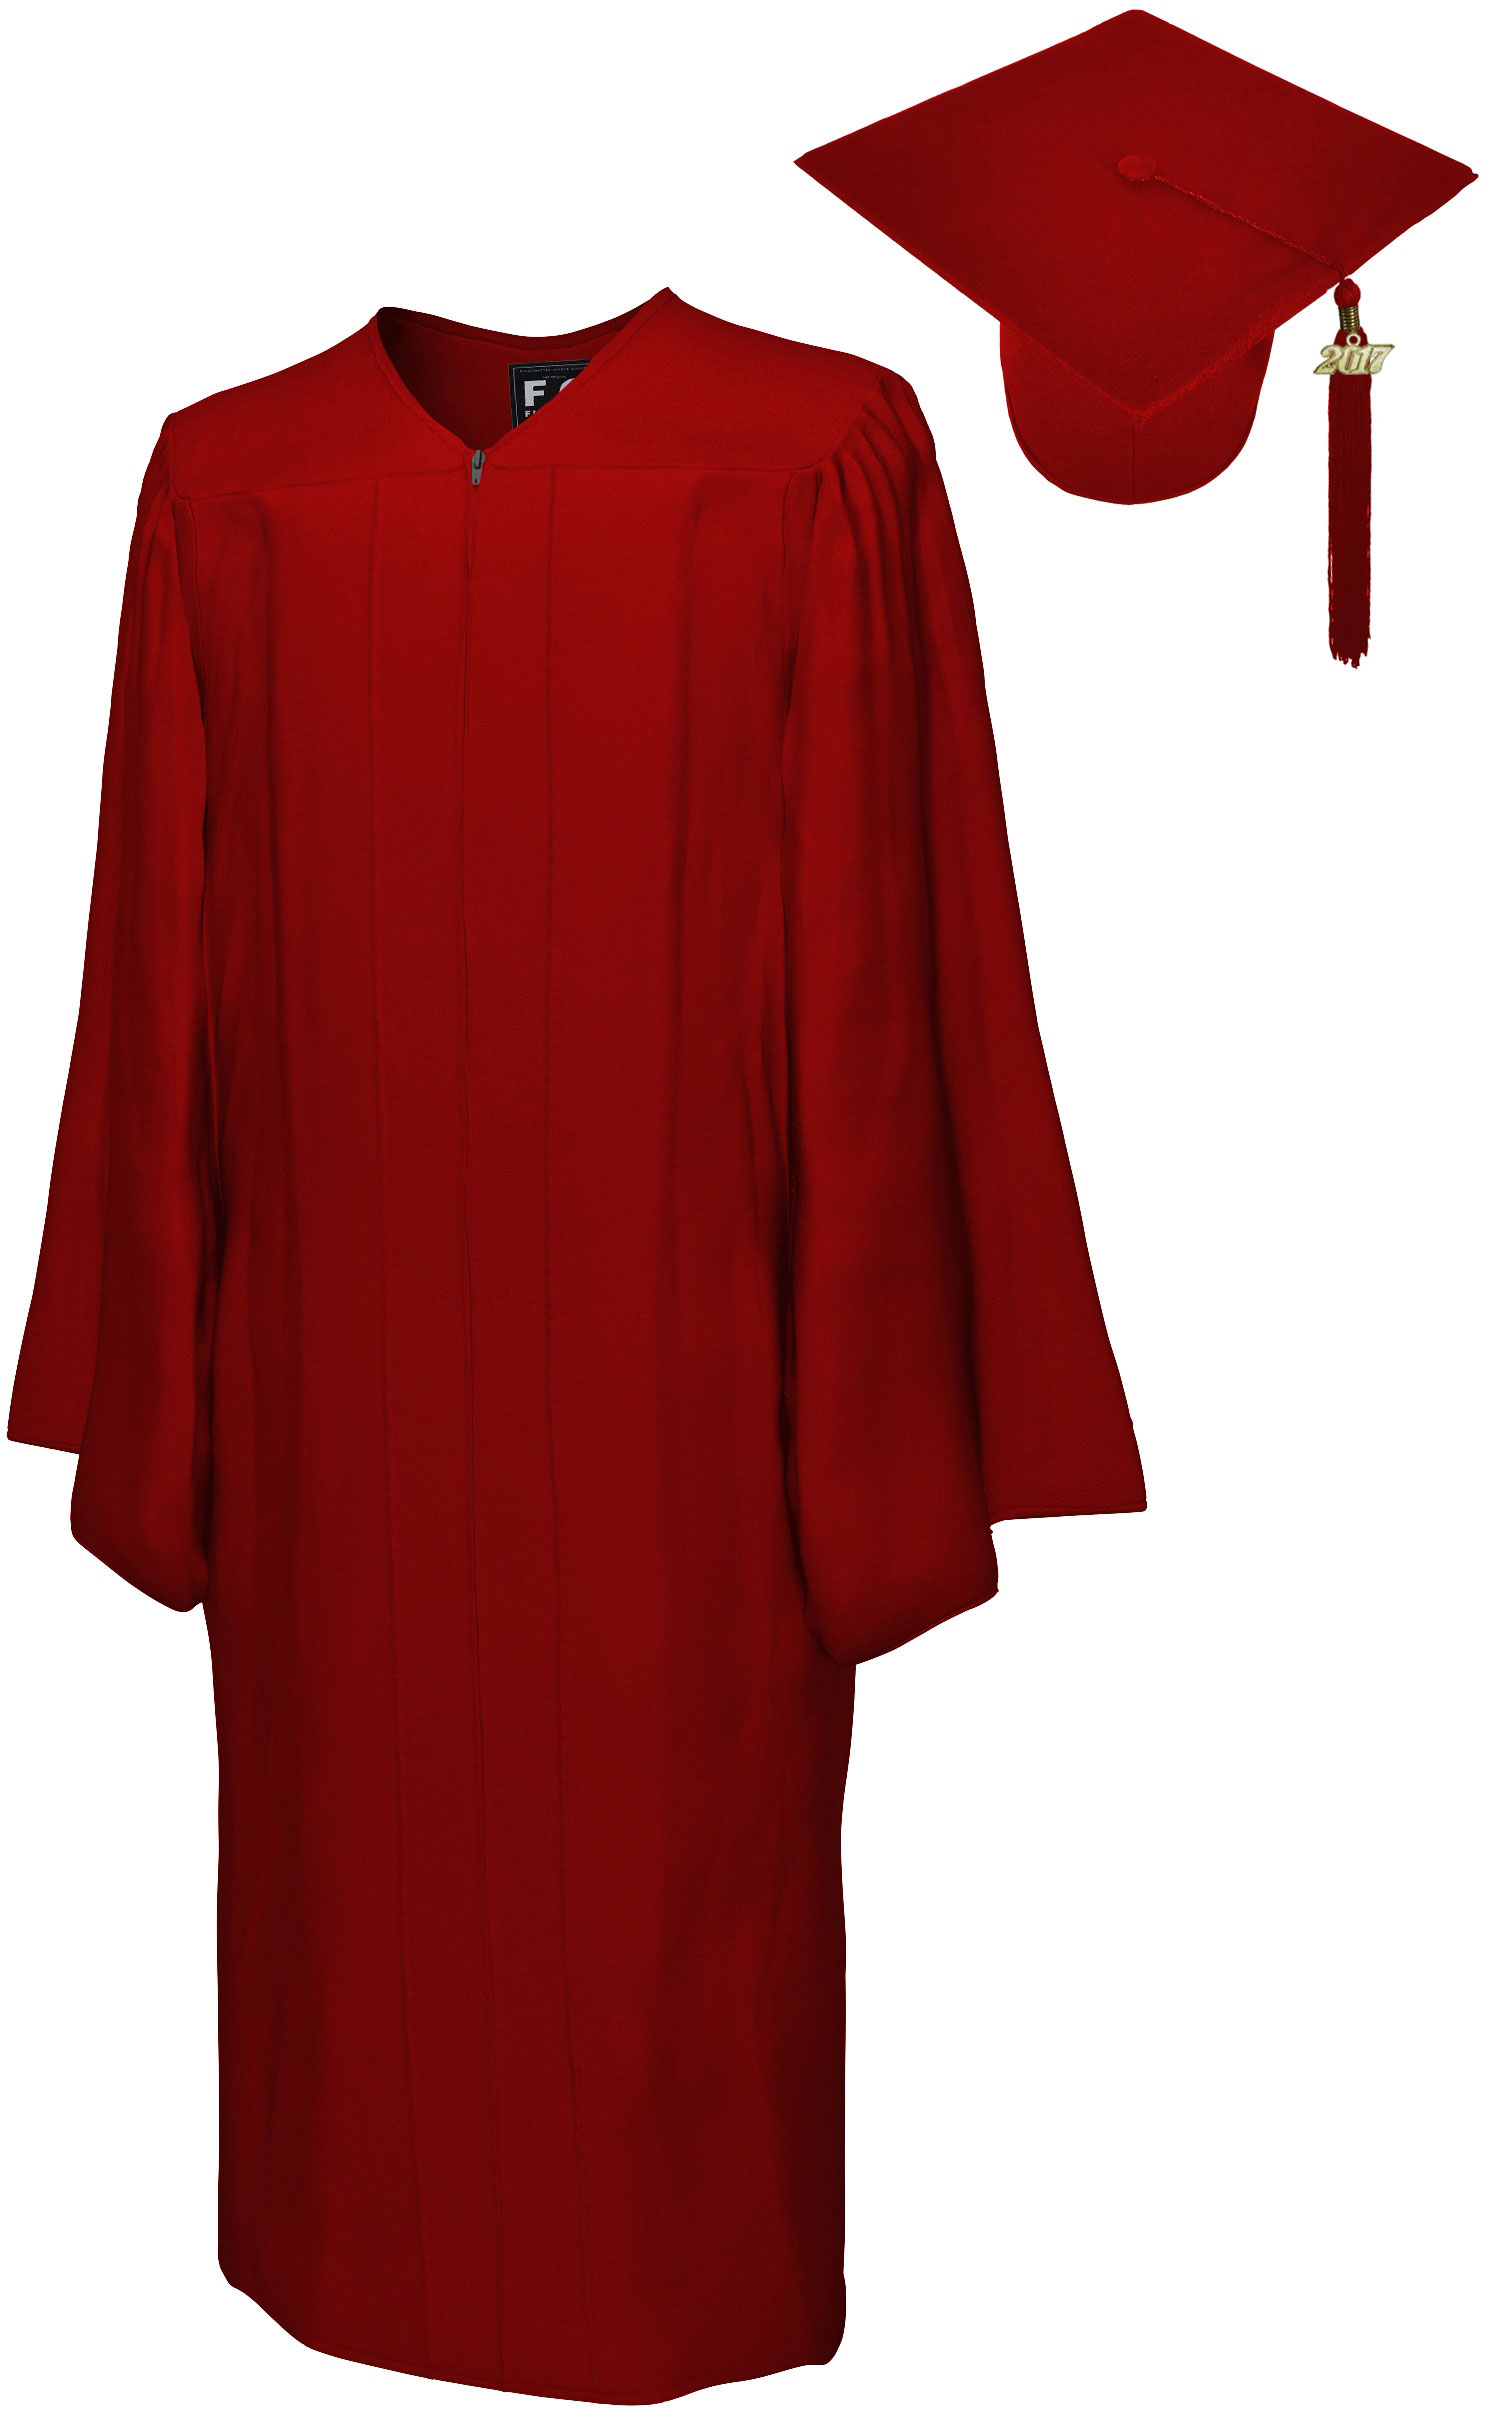 MATTE MAROON RED CAP AND GOWN-rs4251465611300